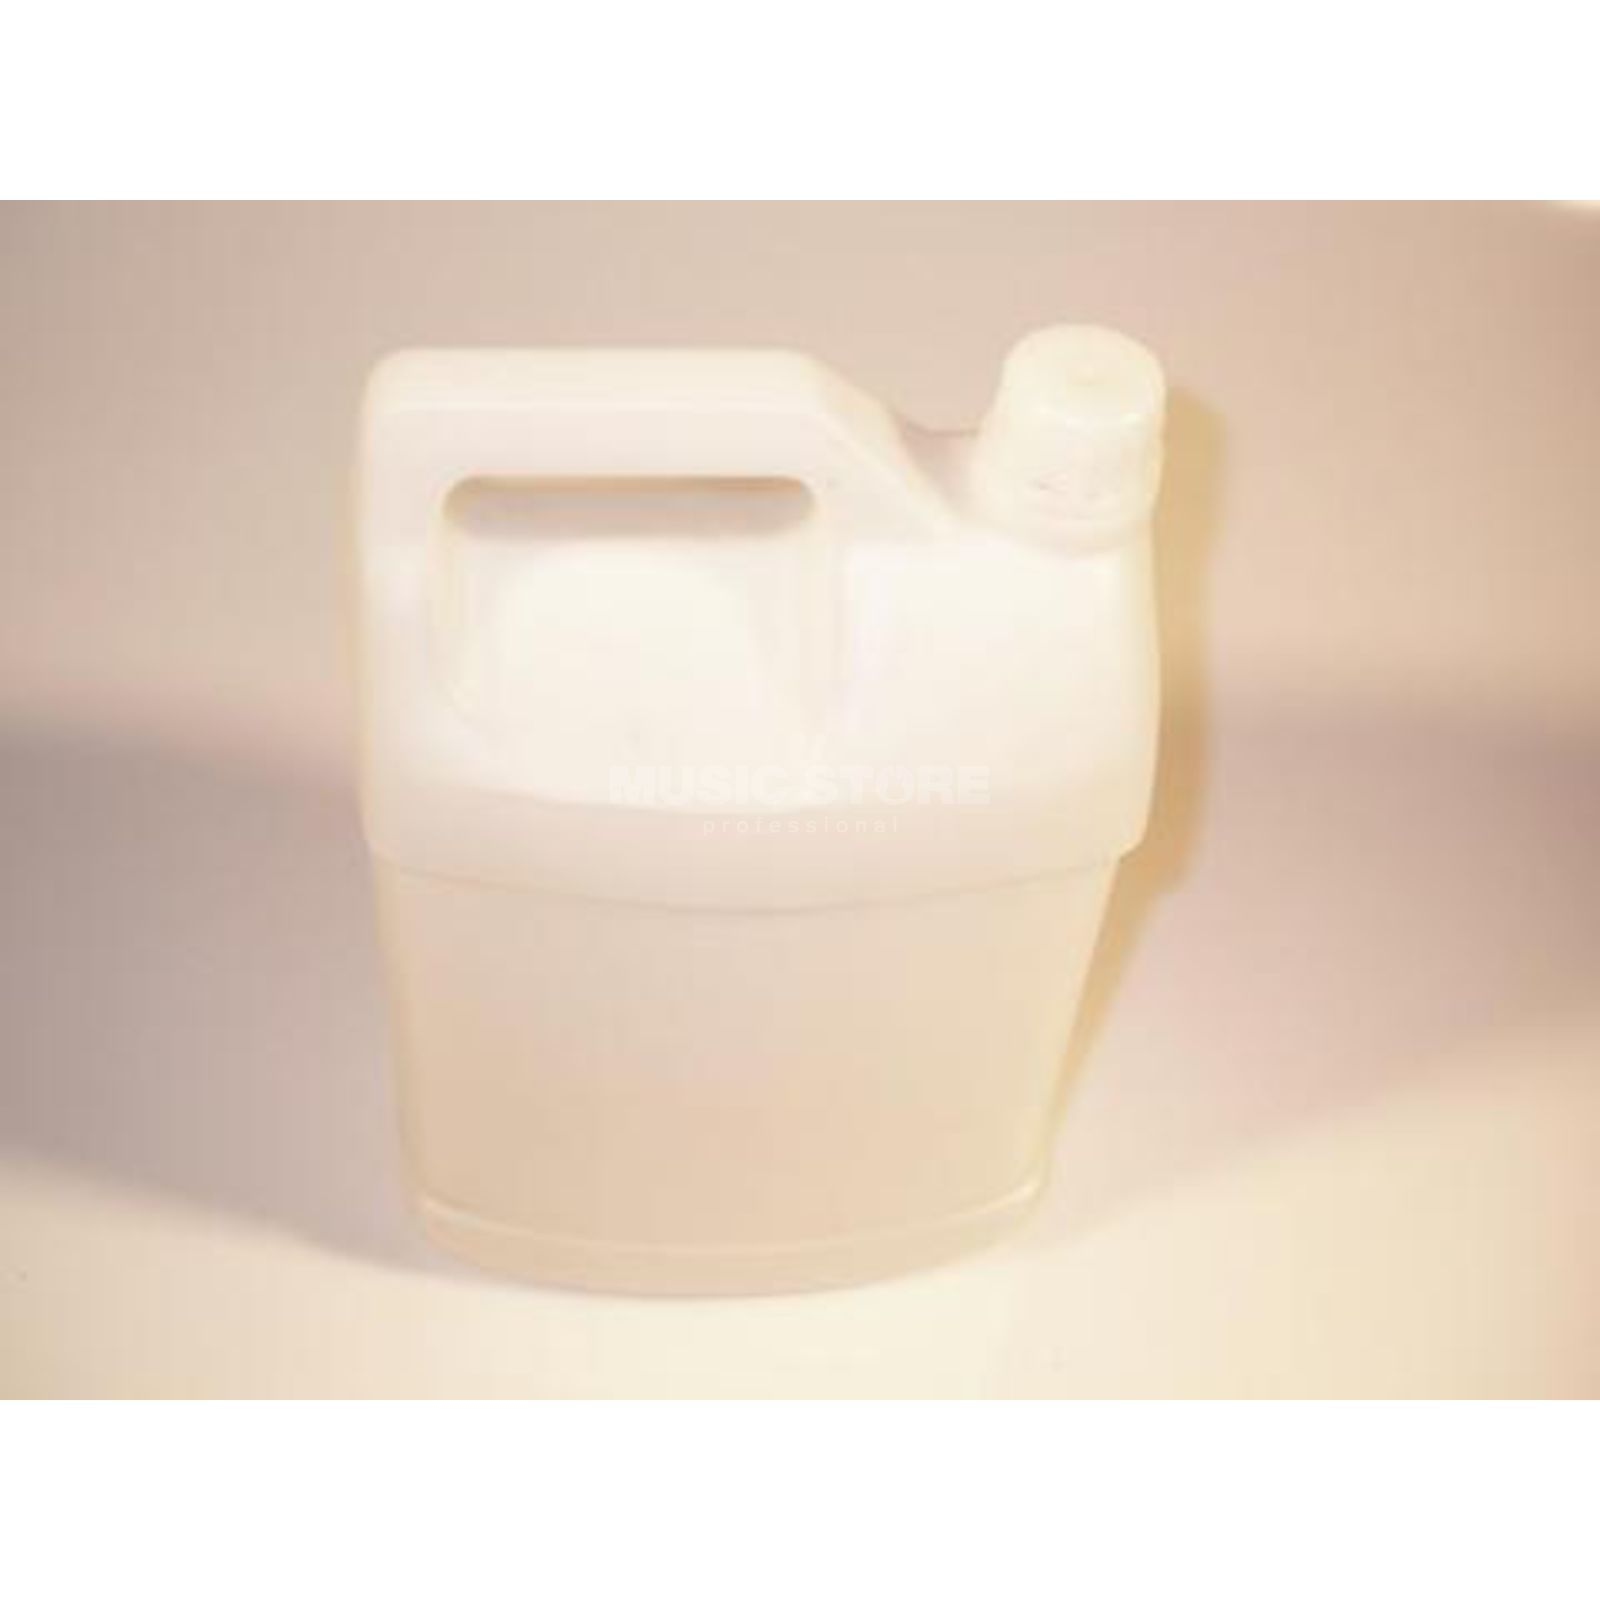 Eurolite Fluid Container for Snow 5001 Produktbillede